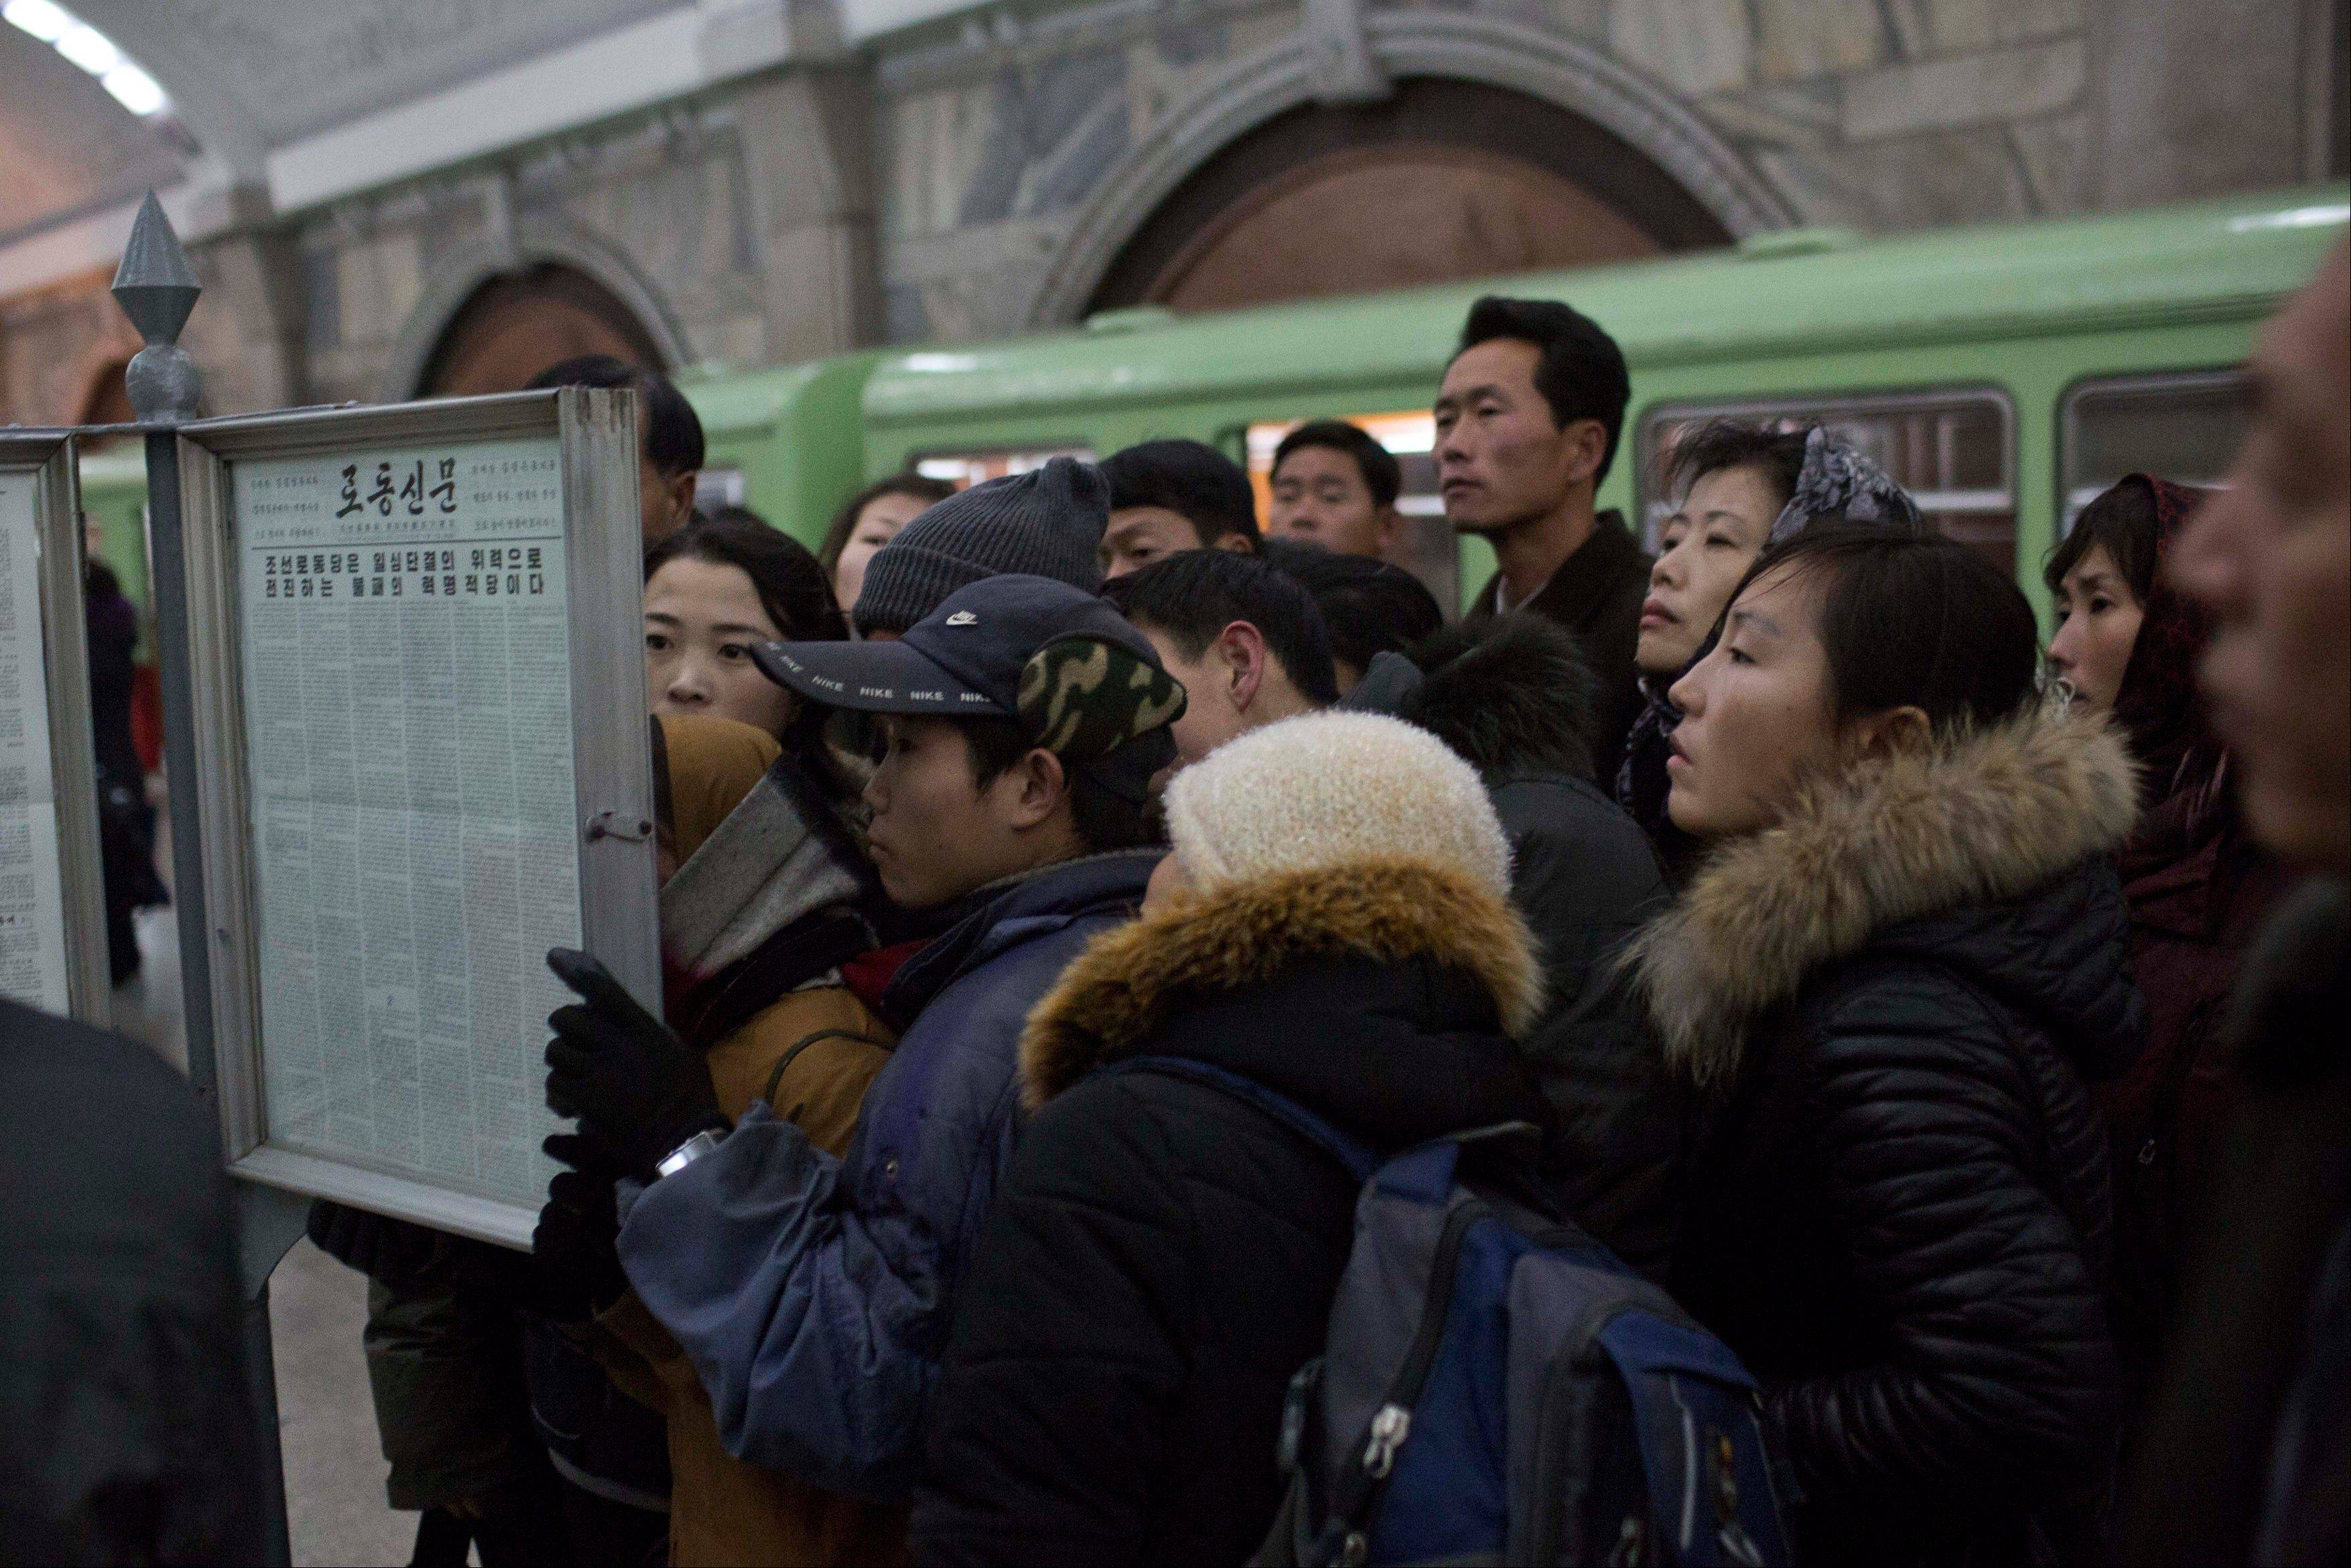 North Korean subway commuters gather around a public newspaper stand on the train platform in Pyongyang, North Korea on Friday, Dec. 13, 2013, to read the headlines about Jang Song Thaek, North Korean leader Kim Jong Un�s uncle who was executed as a traitor.